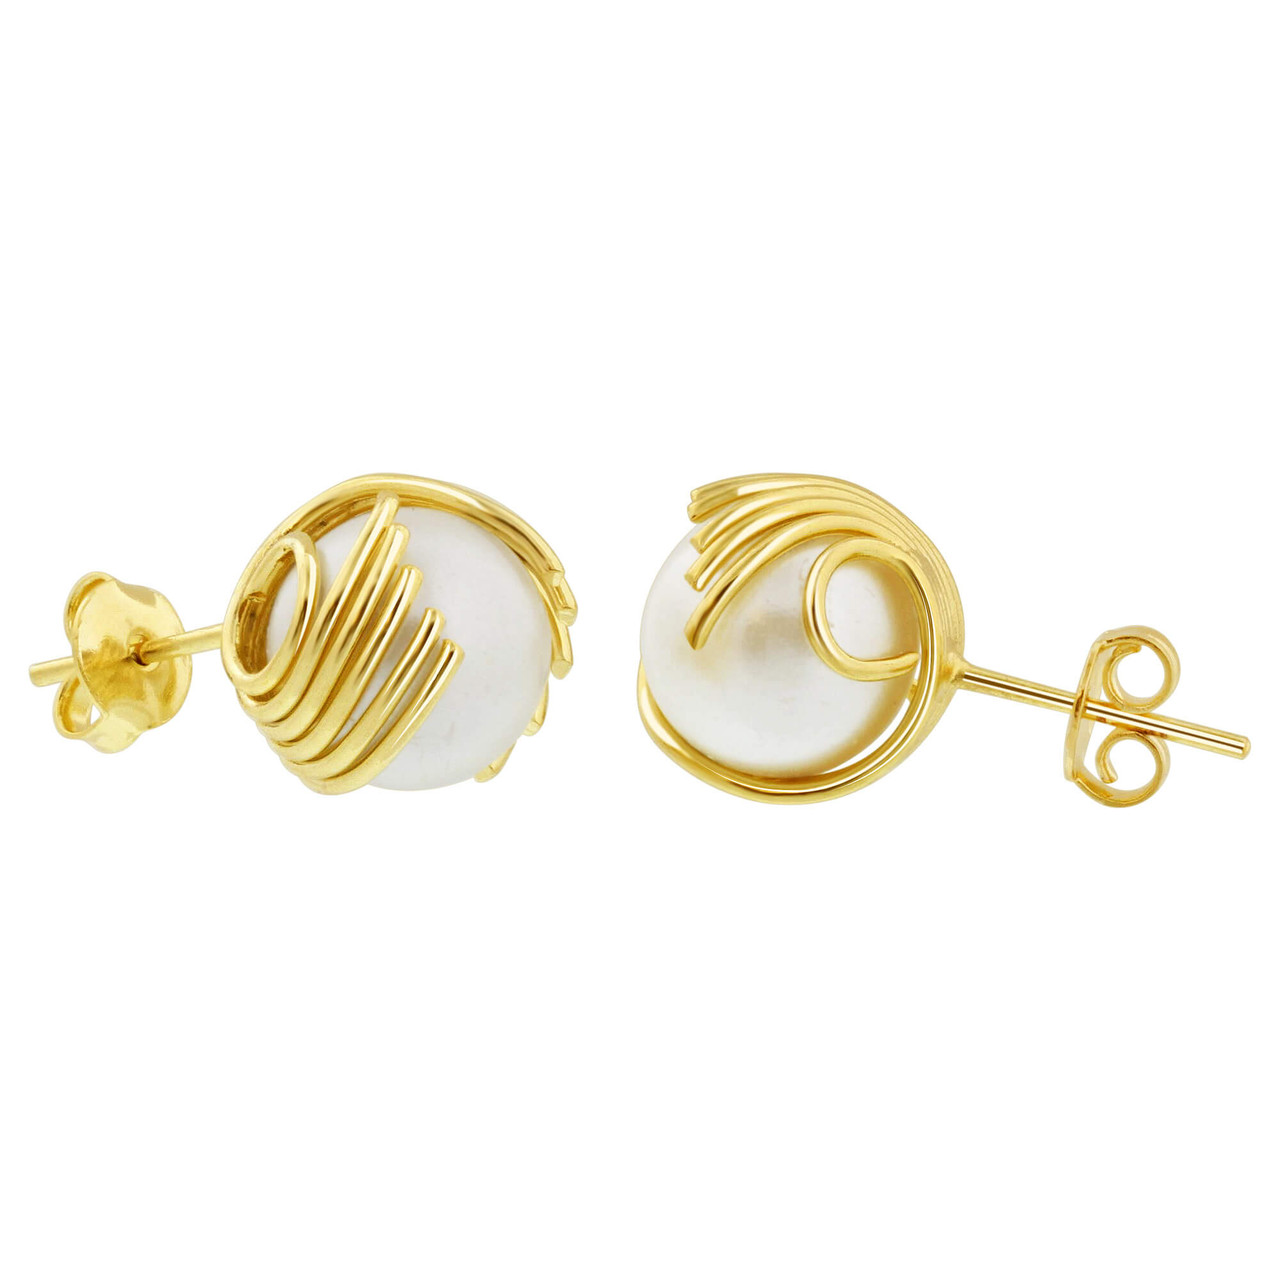 18K Gold Layered 10mm Simulated Faux Pearl Stud Earrings For Women